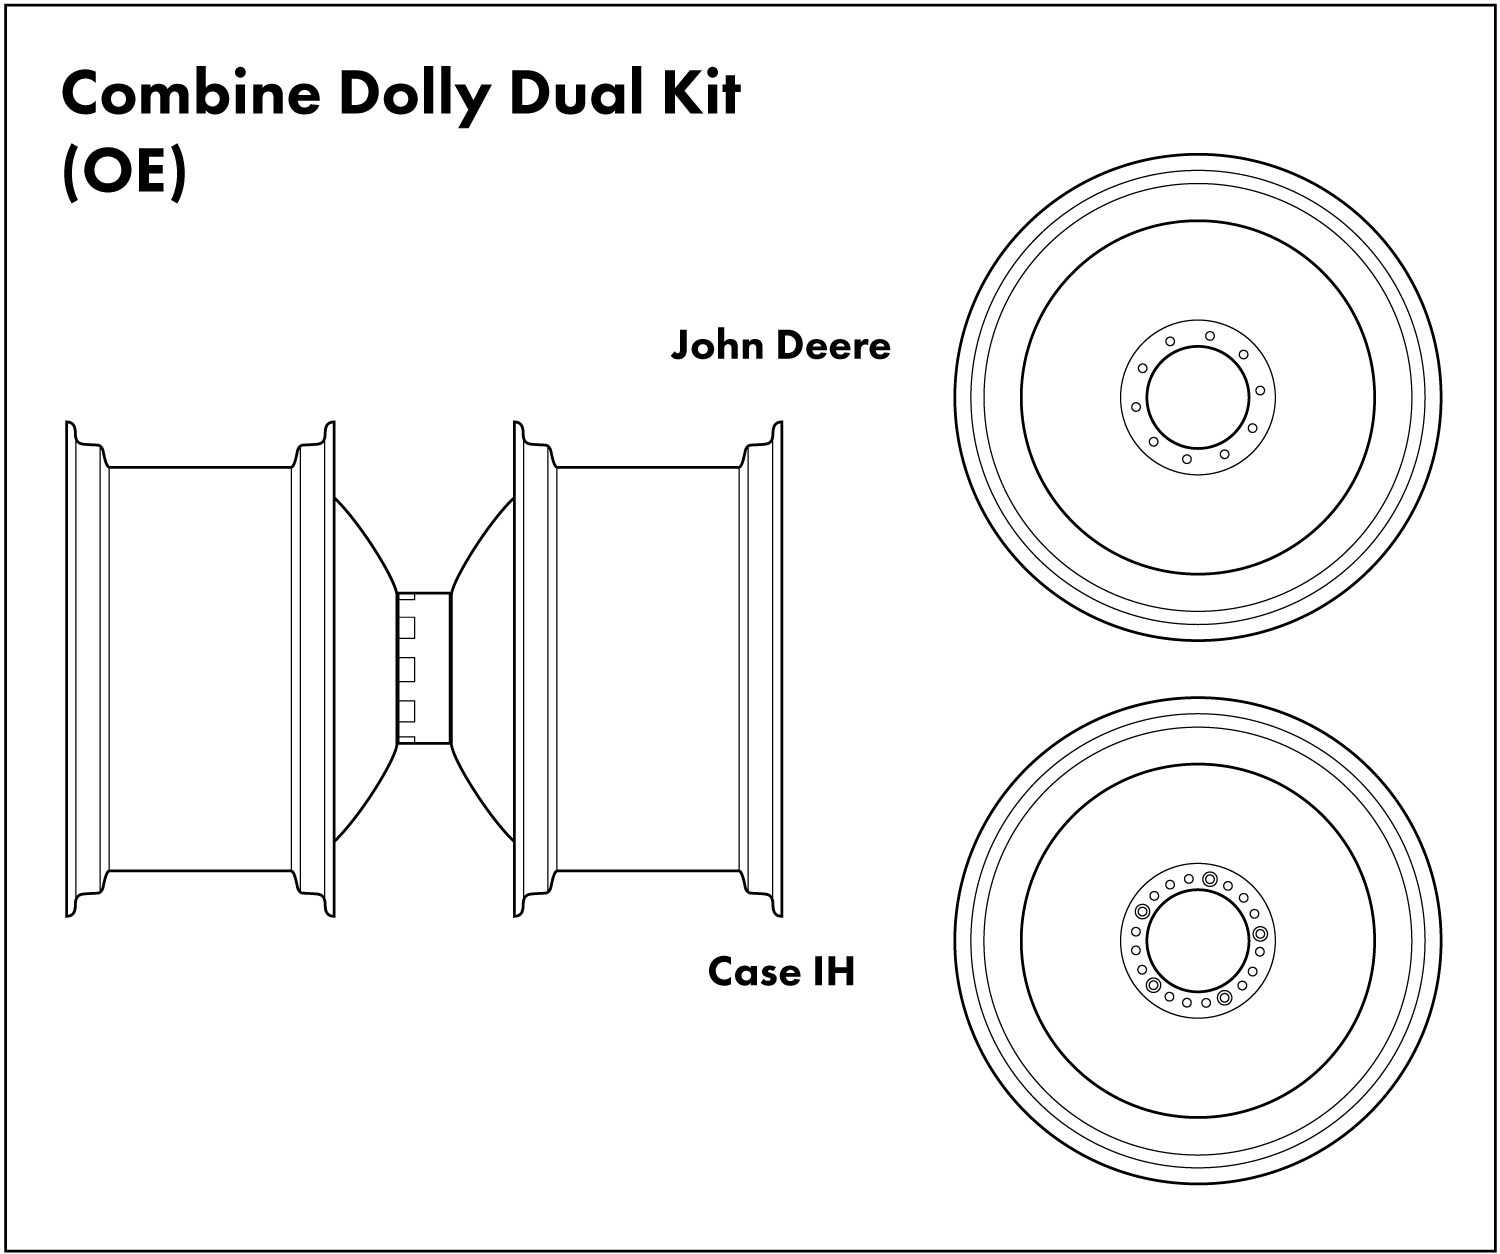 Combine Dolly Duals Diagram